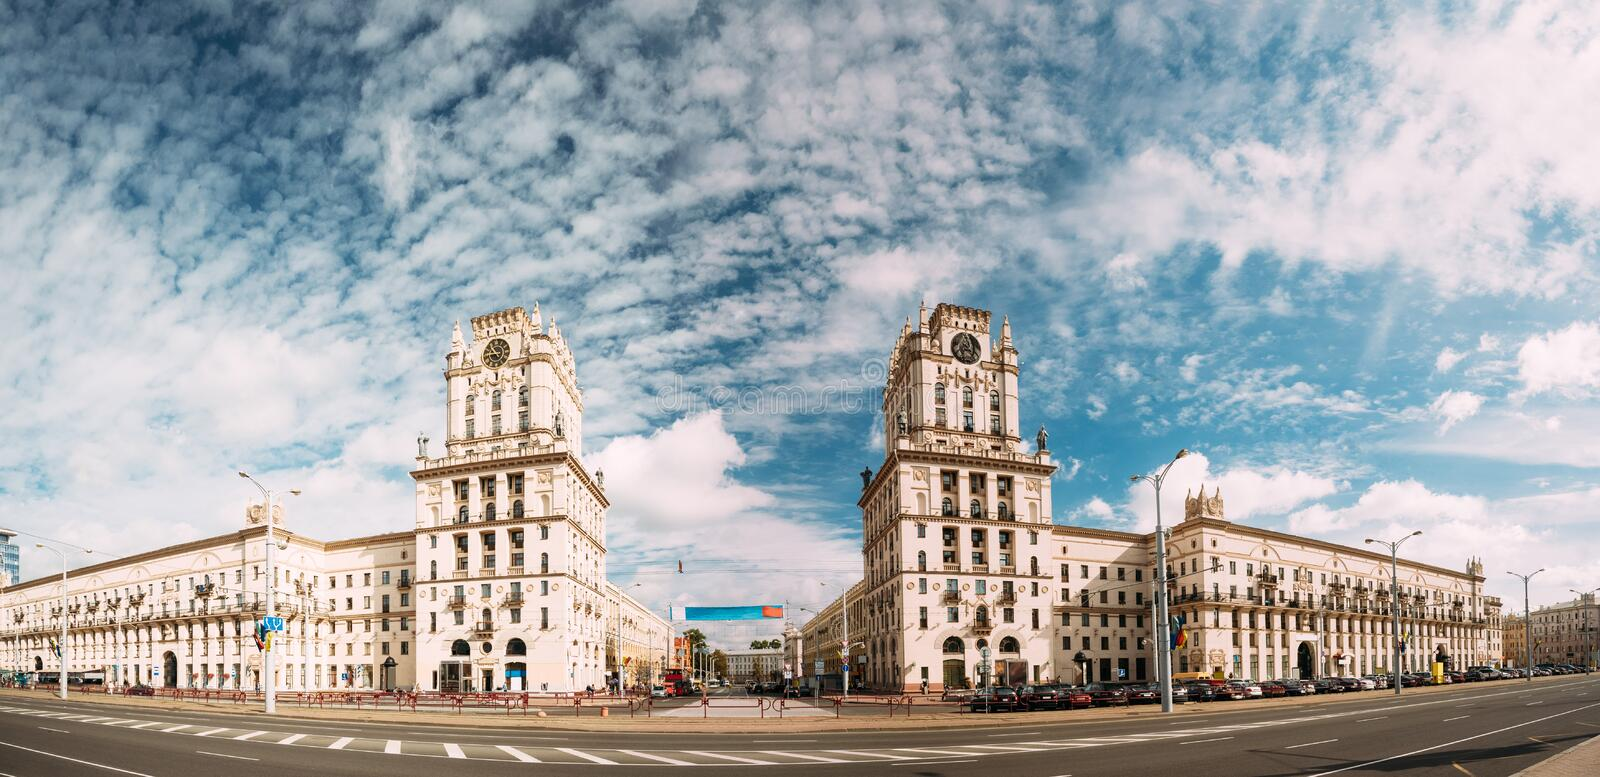 Minsk, Belarus. Two Buildings Towers Symbolizing The Gates Of Minsk. Station Square. Crossing The Streets Of Kirova And Bobruyskaya. Soviet Heritage, Urban royalty free stock photos